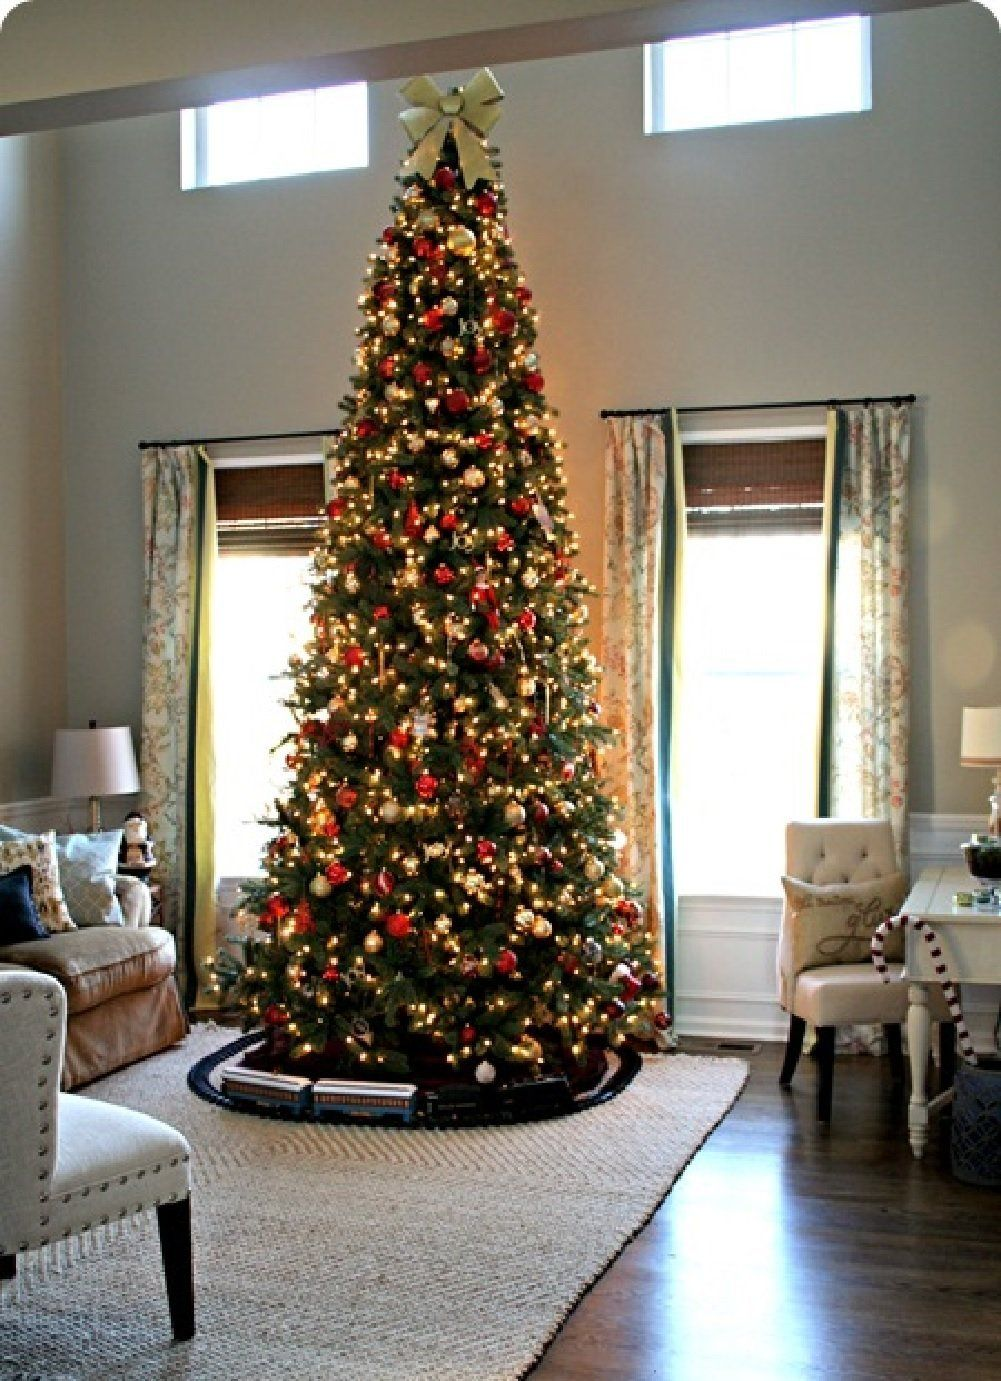 Our 12 Foot Christmas Tree Christmas 12 Foot Christmas Tree Christmas Decorations